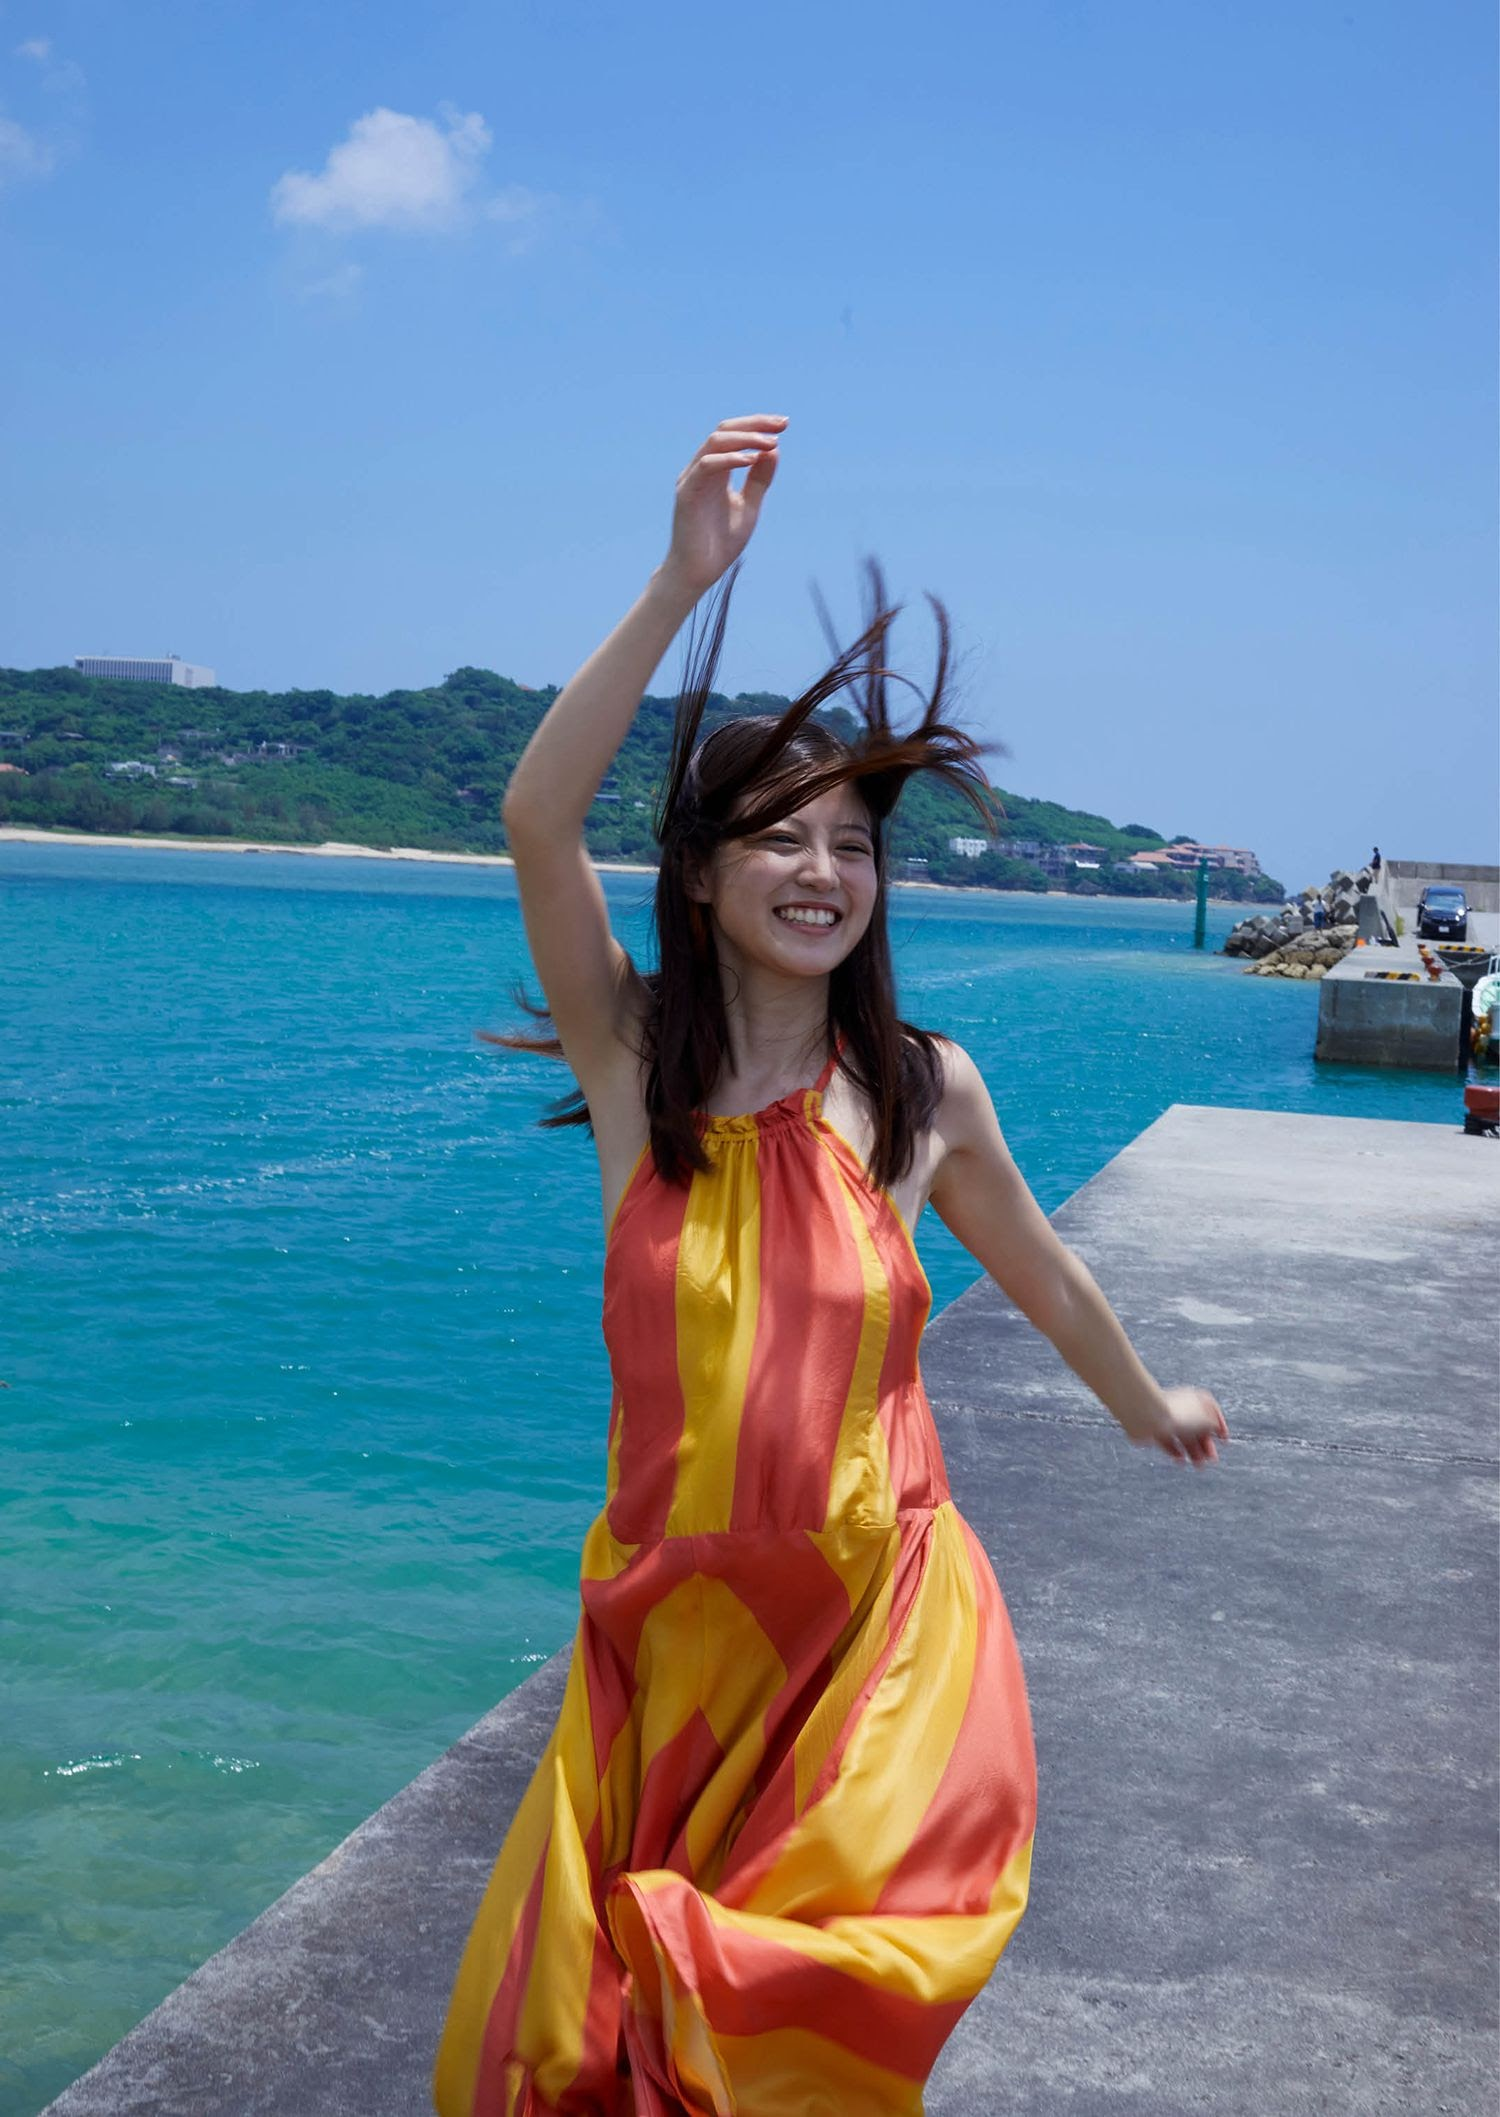 Without a doubt the youngest actress Mio Imada004